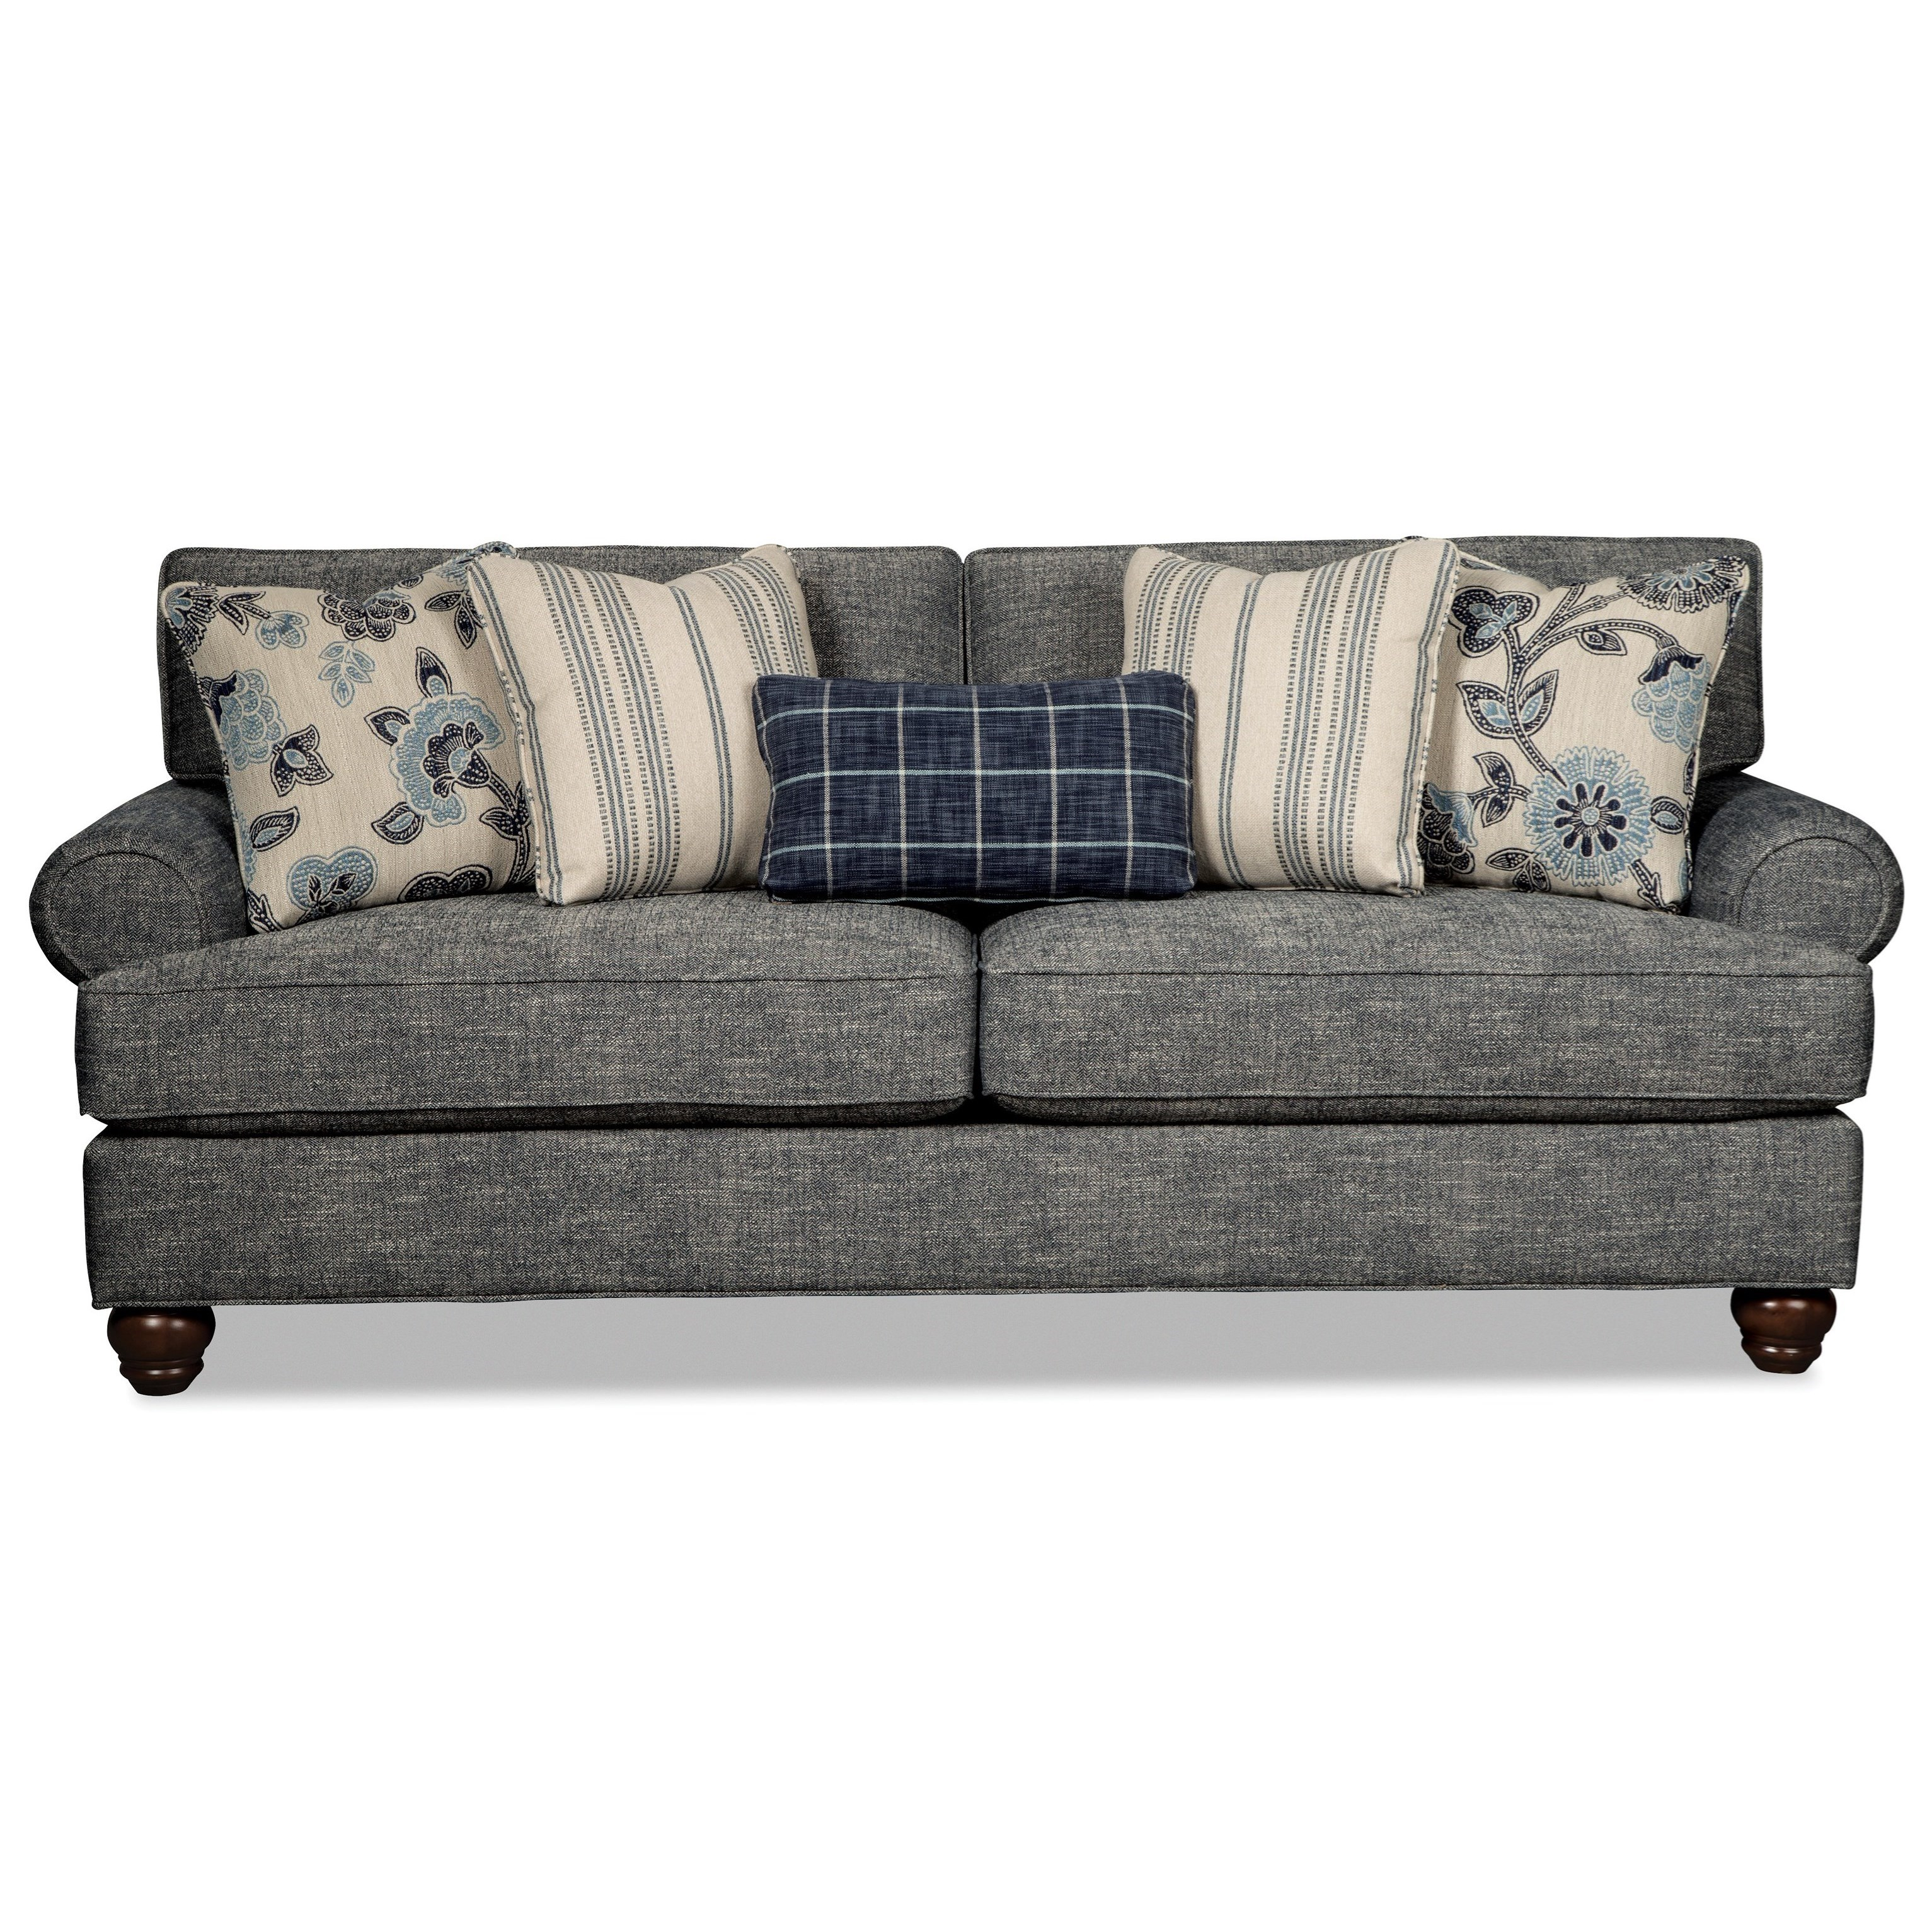 773550 Sofa by Craftmaster at Esprit Decor Home Furnishings